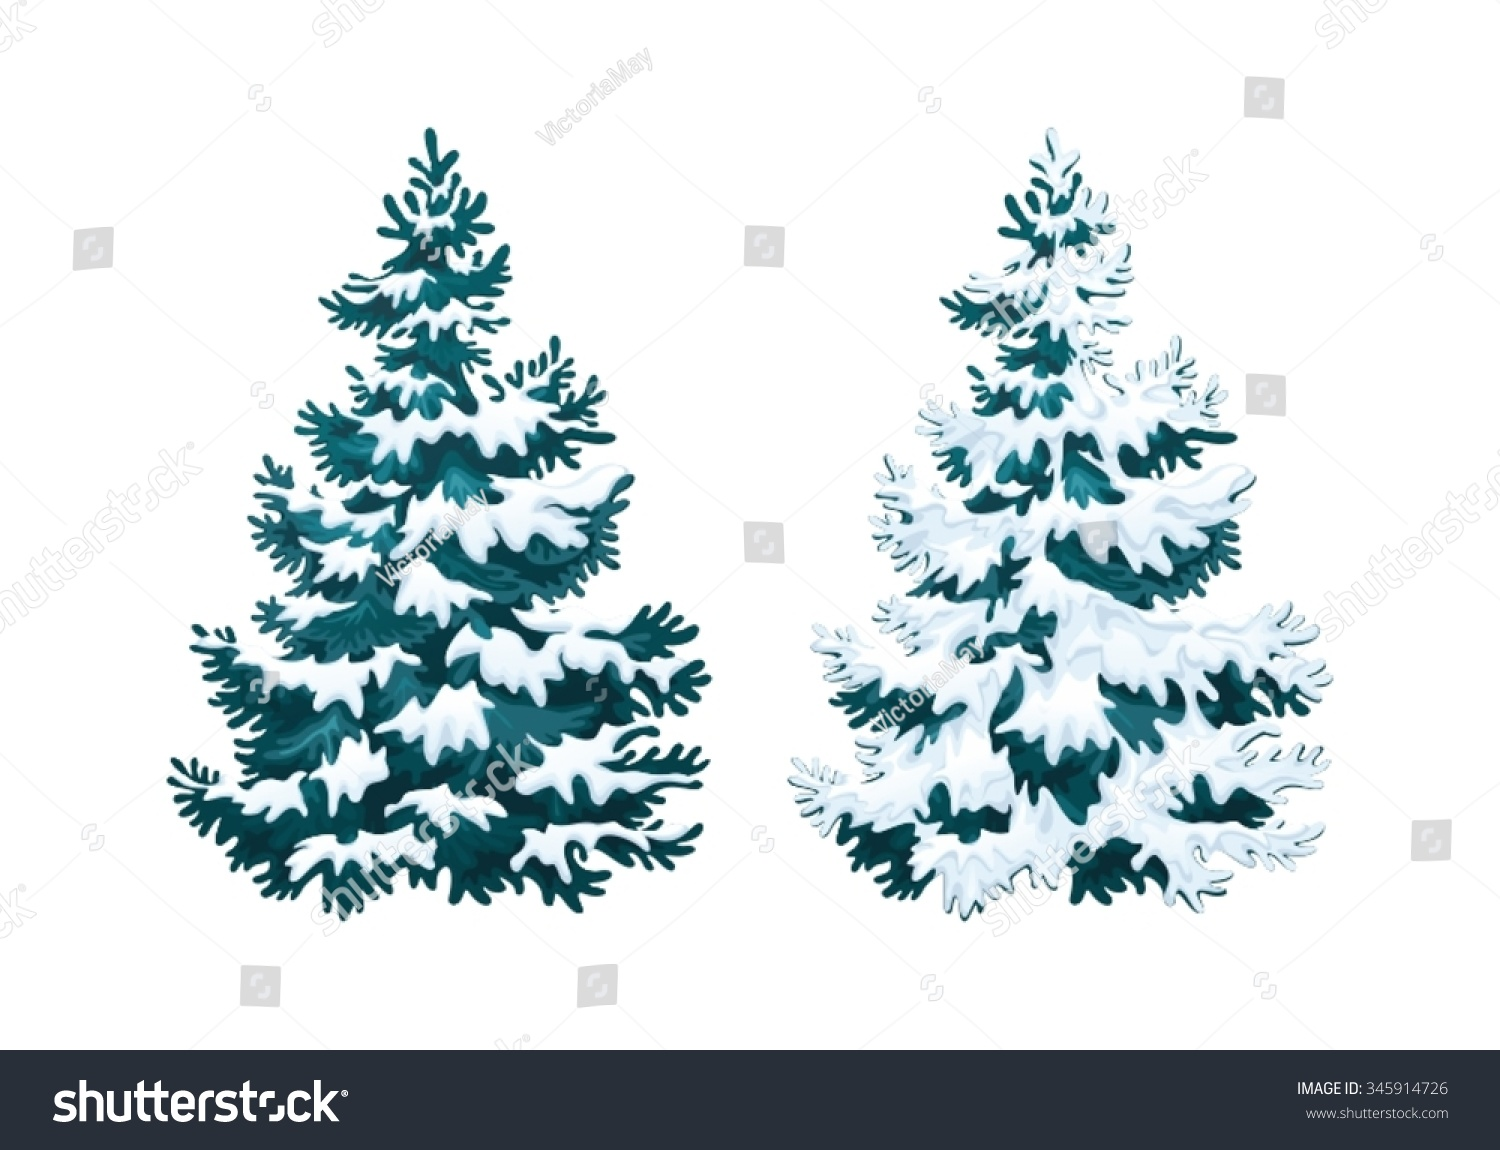 Realistic christmas tree drawing - Realistic Vector Illustration Of Fir Tree In Snow On White Background Blue Fluffy Pine